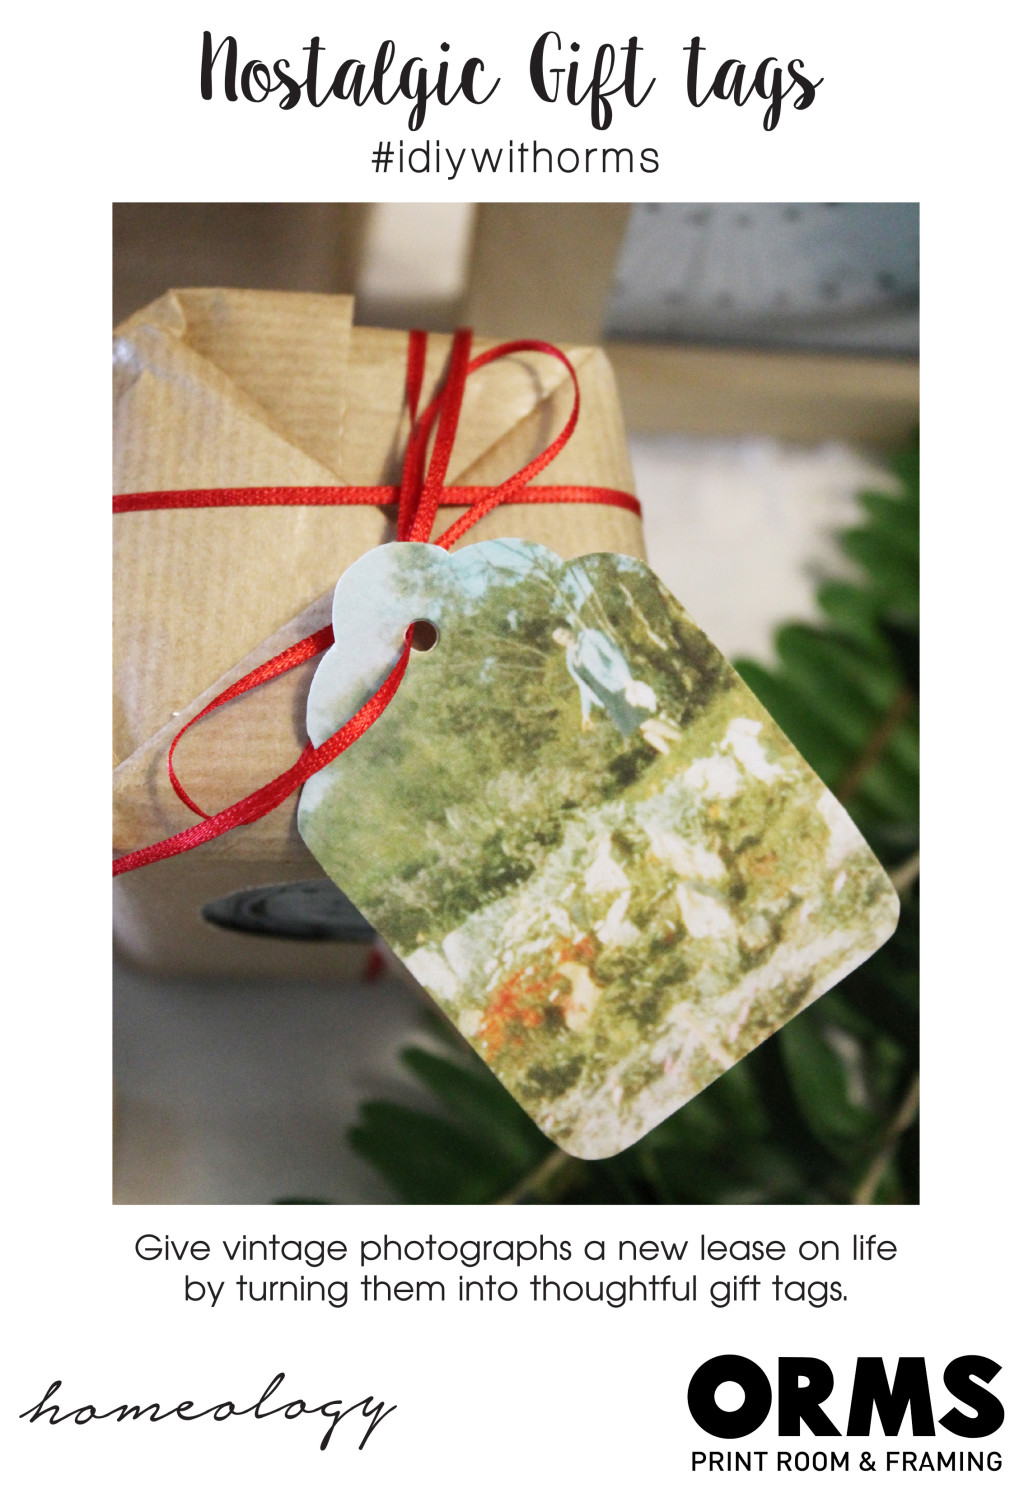 Gift Tags - Orms Print Room and Framing and Homology DIY Project - Personalised Gift Ideas 2015